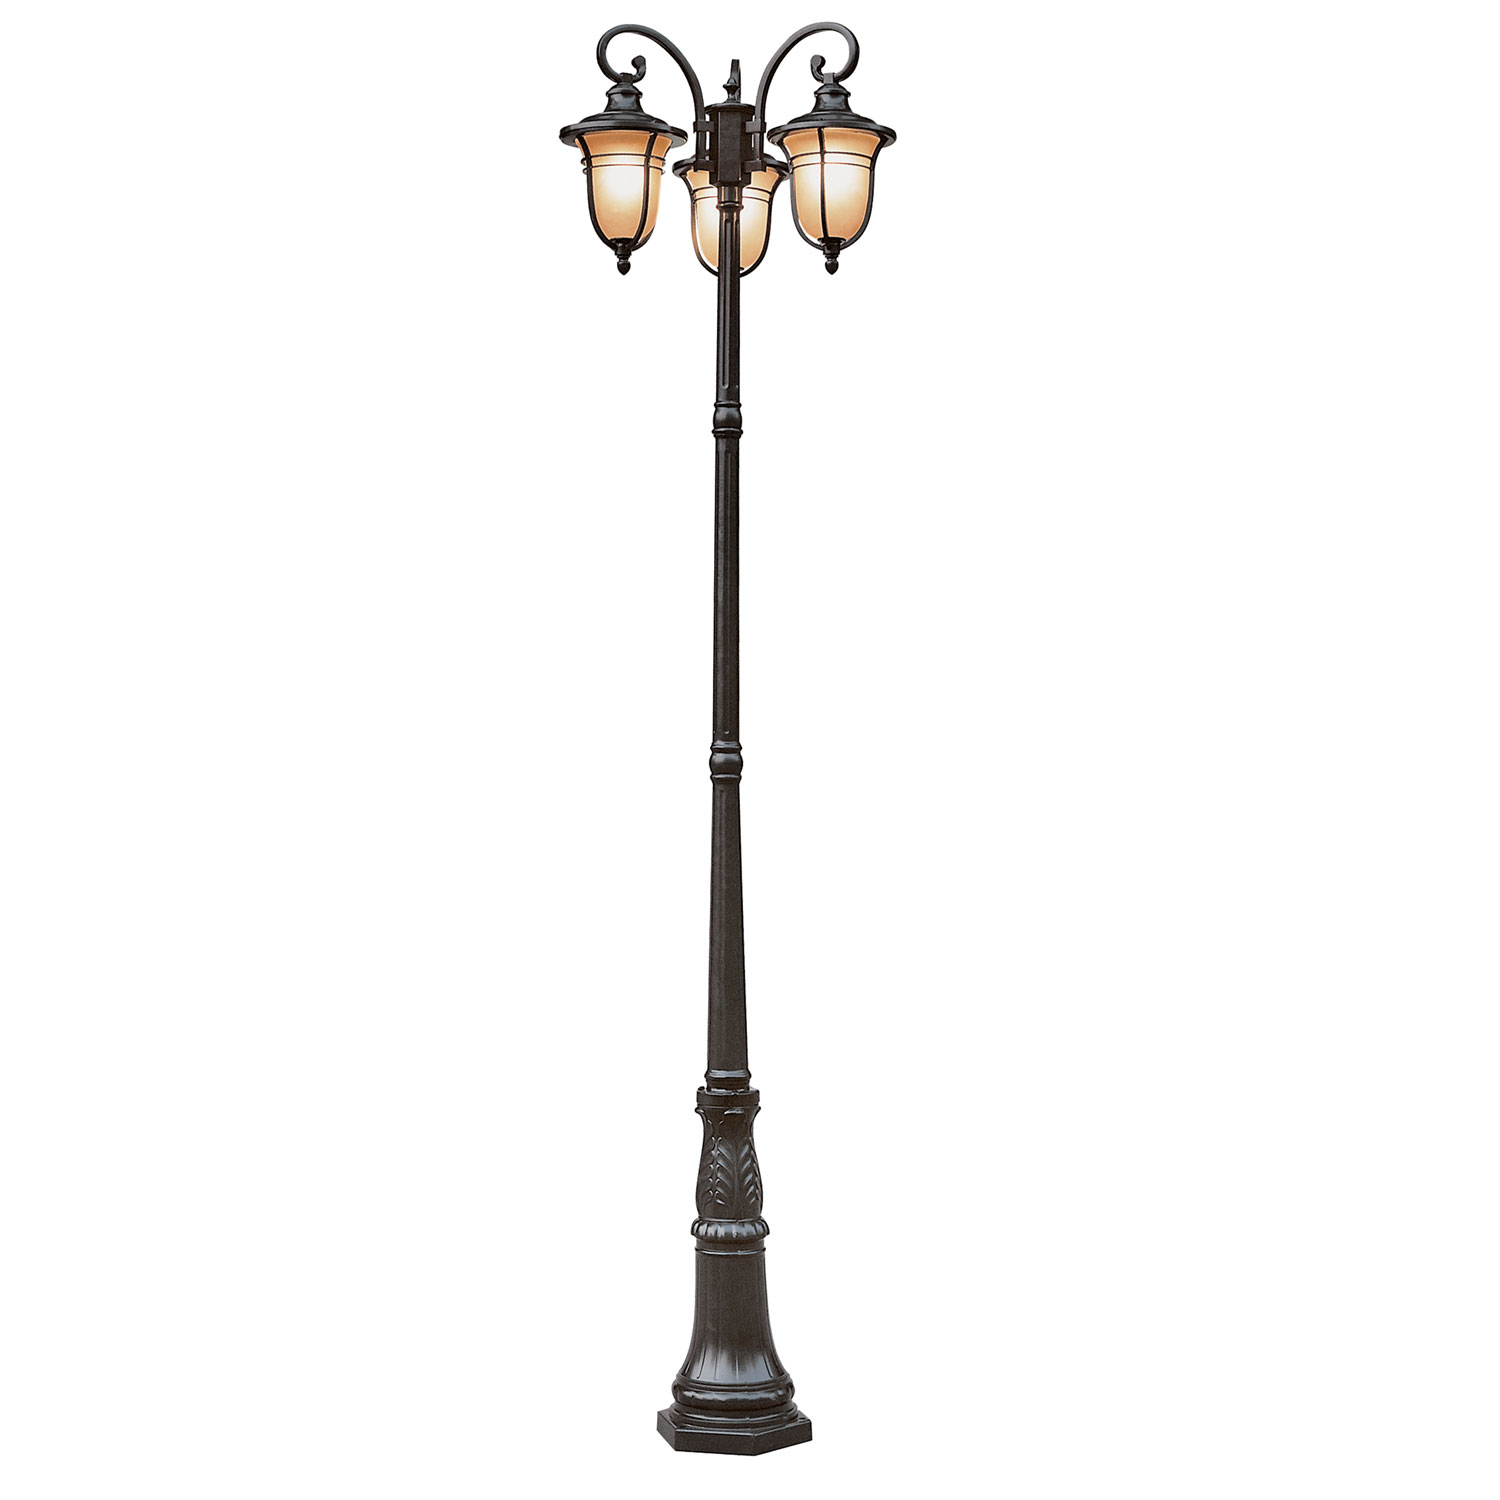 Drop 3 Lantern Lamp Post by Trans Globe | 5707 ROB for Modern Street Lamp Post  587fsj